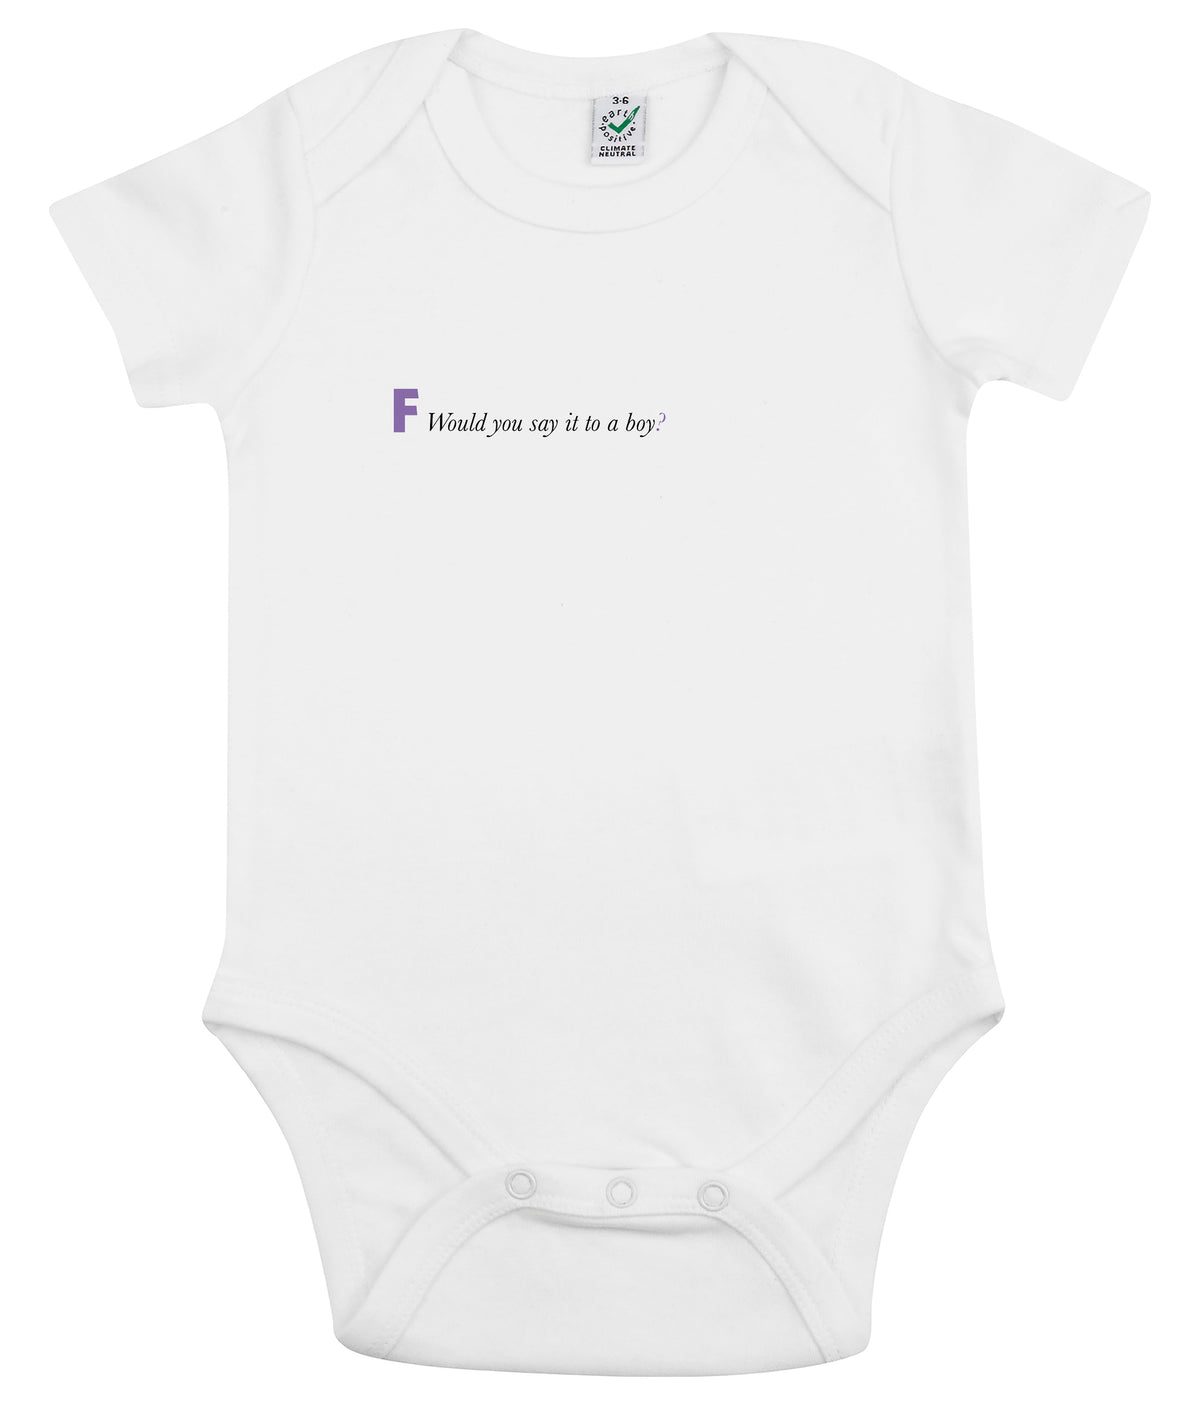 Would You Say It To A Boy Organic Combed Cotton Babygrow White